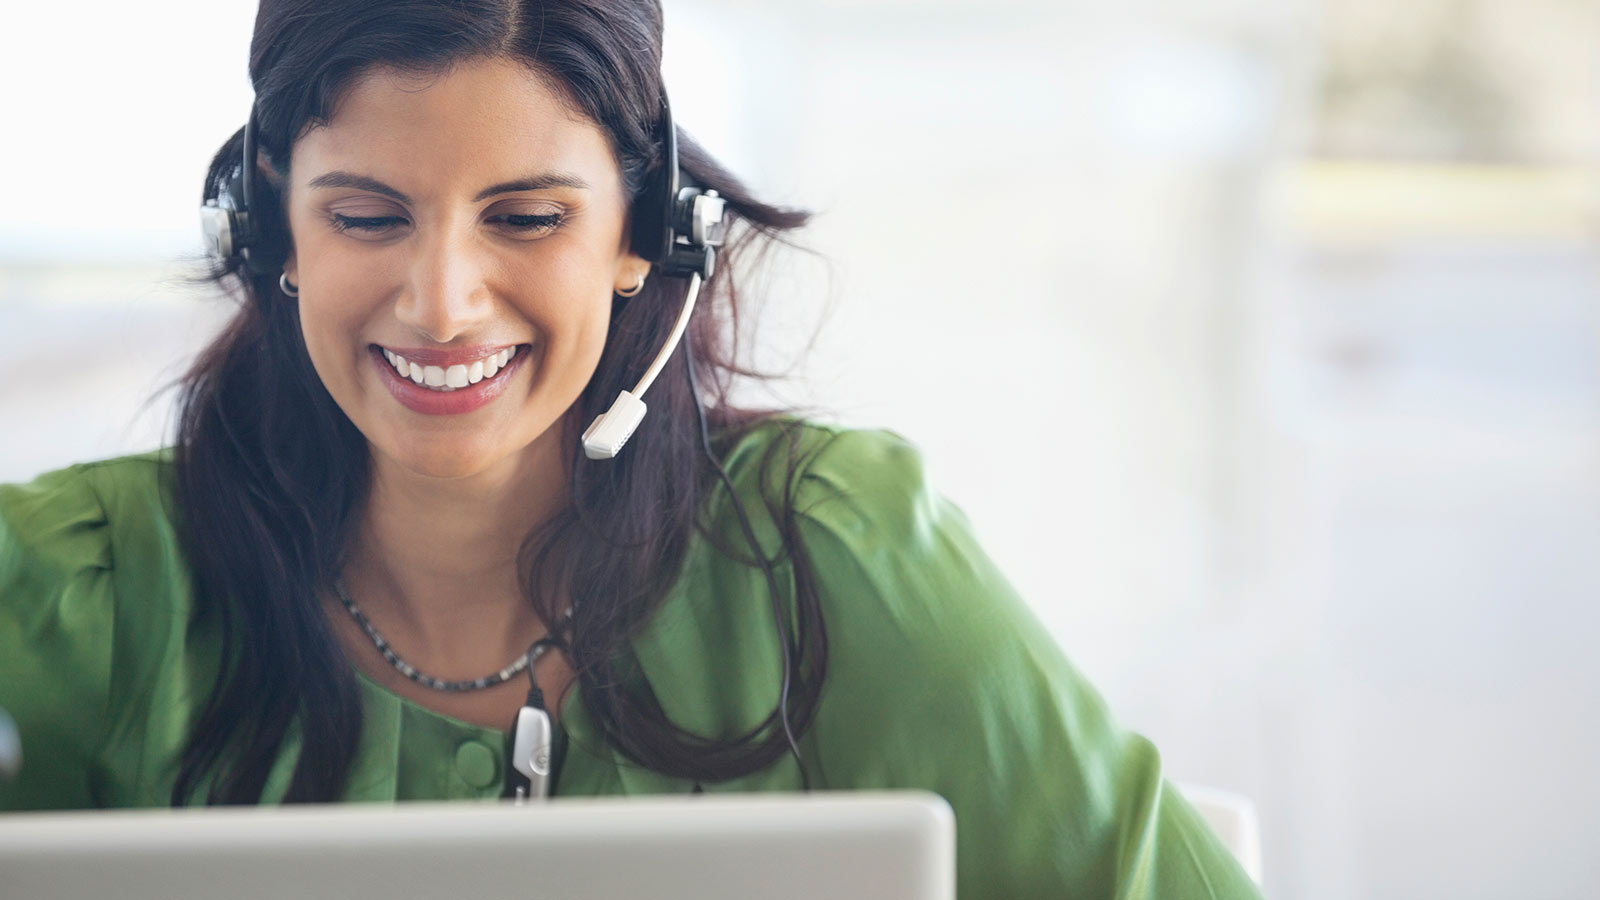 Woman wearing headset looking at laptop.